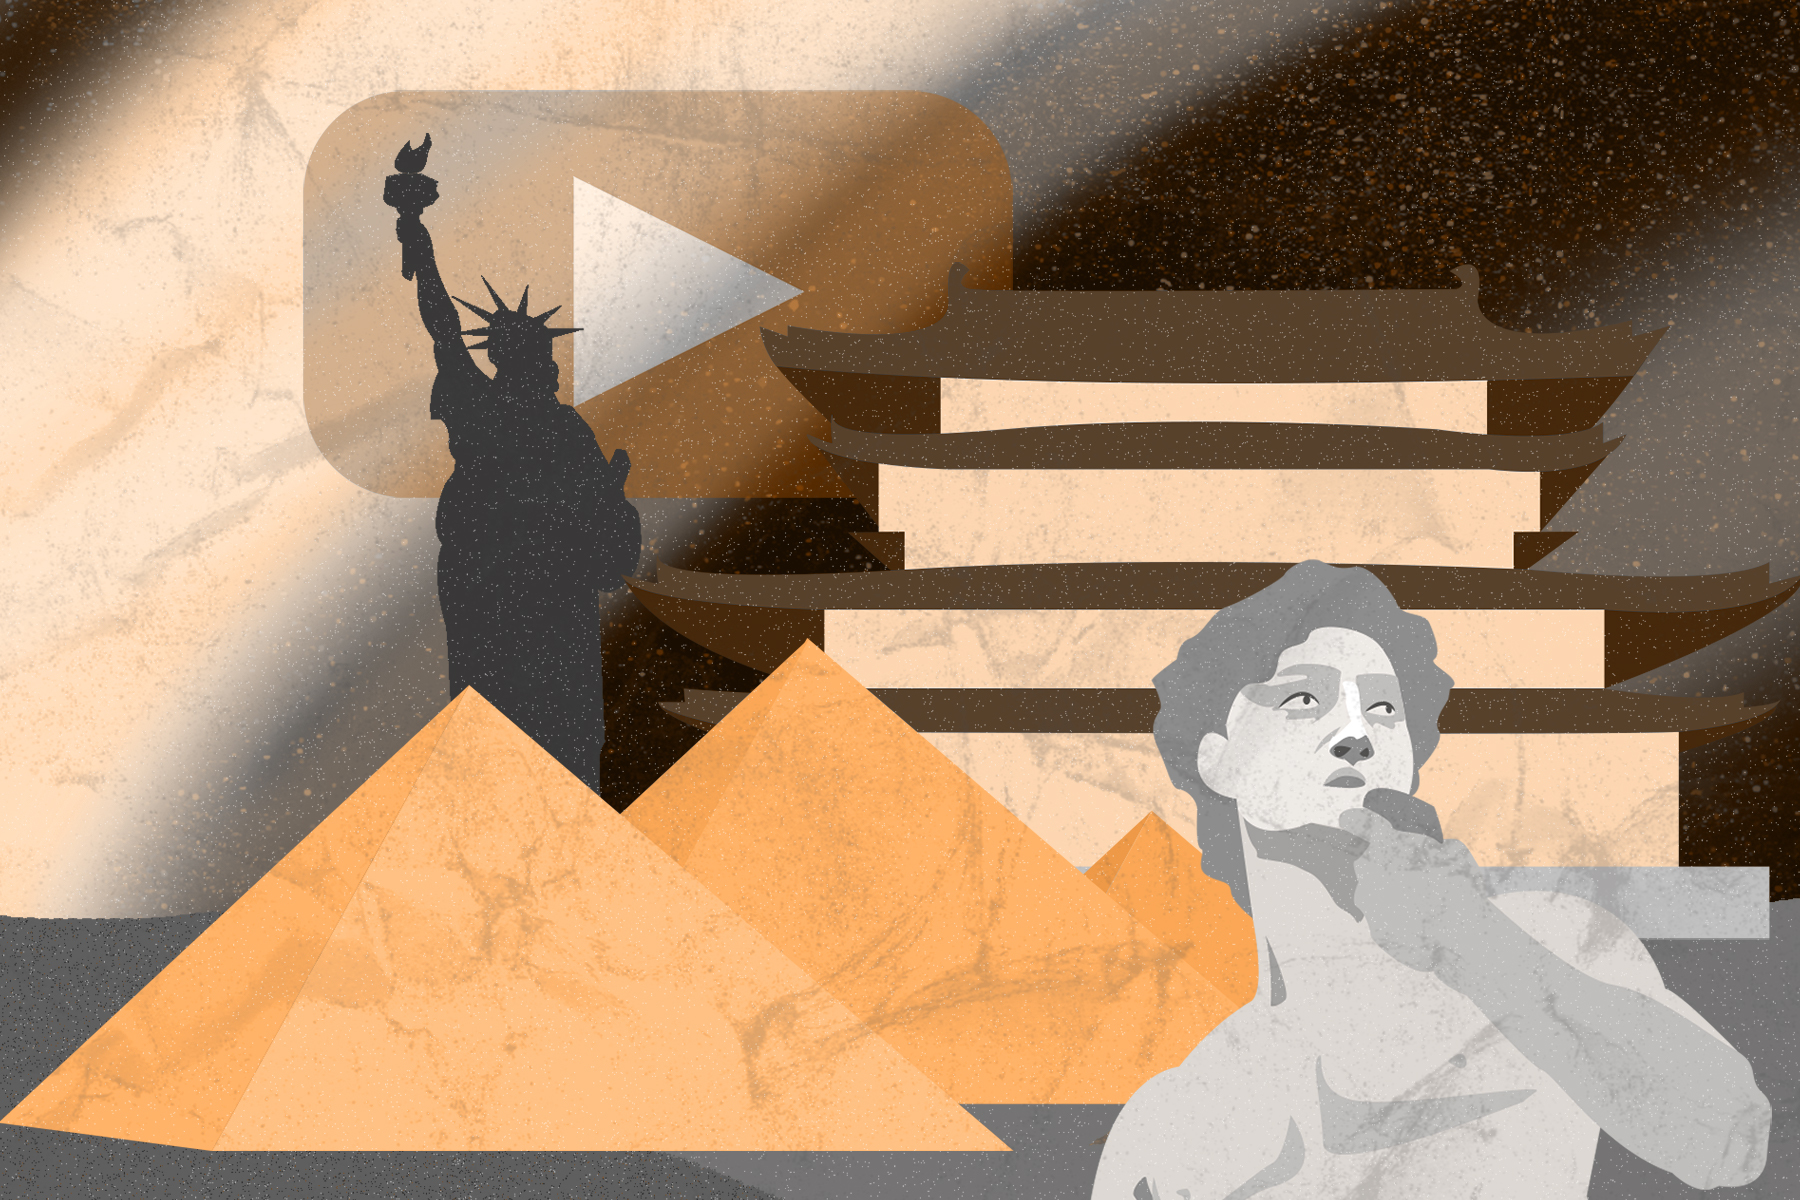 Illustration by Alicia Paauwe for an article on HistoryTube